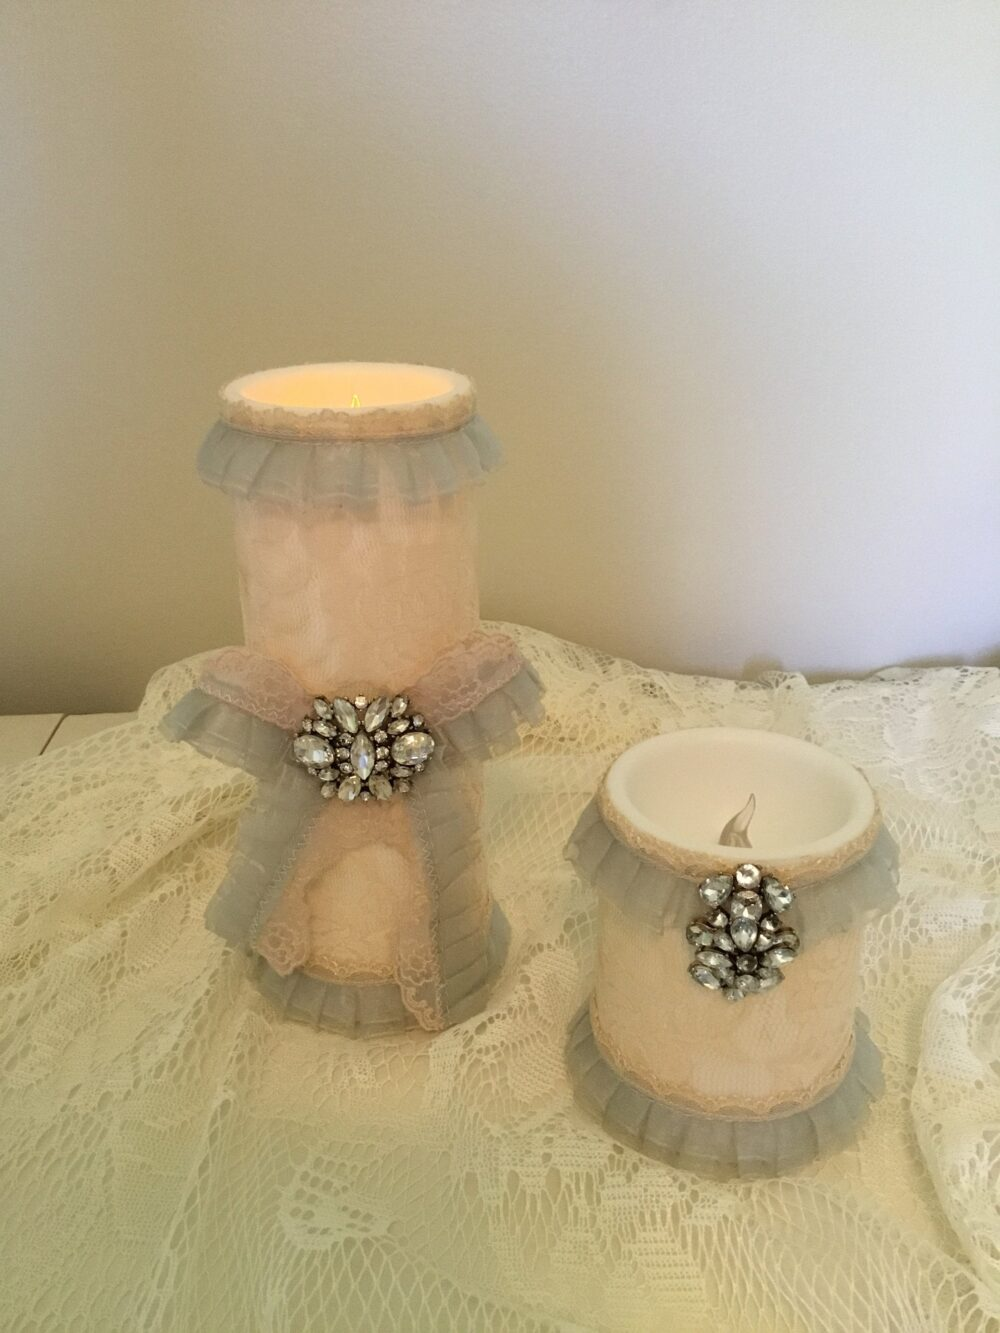 Shabby Chic Pillar Candles Set 2/Hand Dyed Lace/Vintage Pale Blue Ruffle Lace Trim/Led Flameless